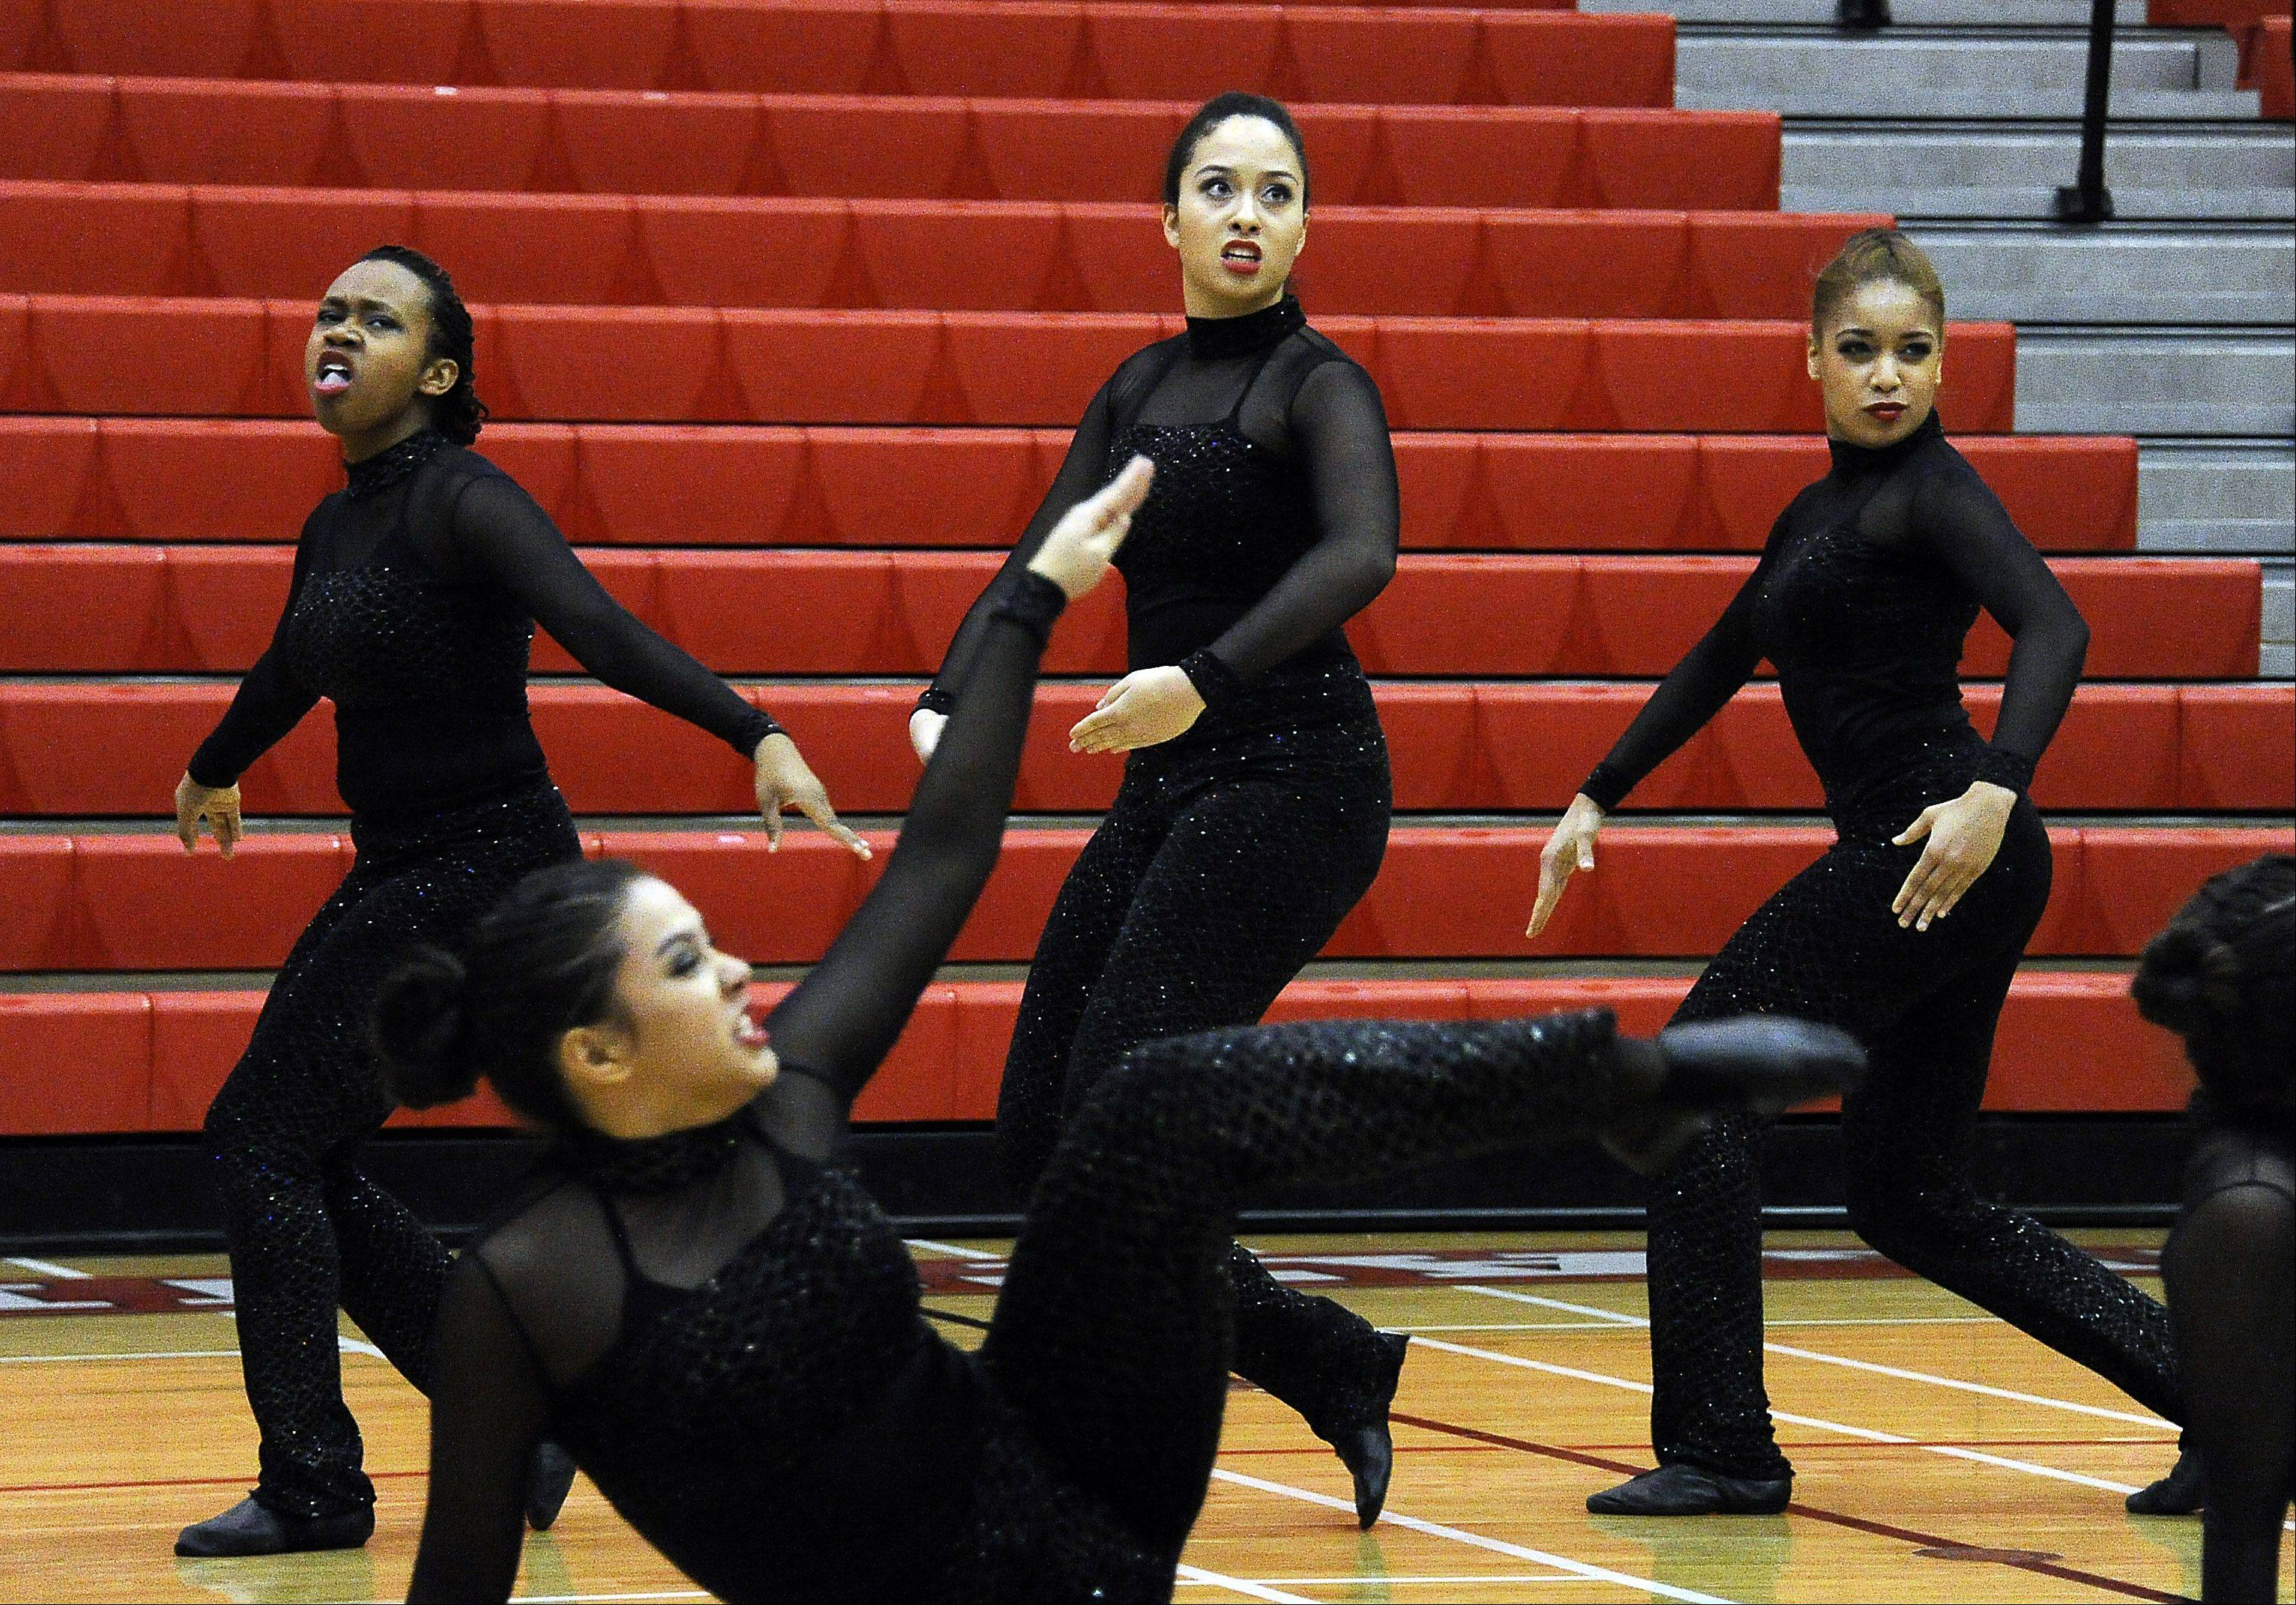 Dancing in the (2A) division are members of the Maine East High School dance squad with Sade Howell (center) leading the way in the 1st annual Sectional Competition at Palatine High School on Saturday.